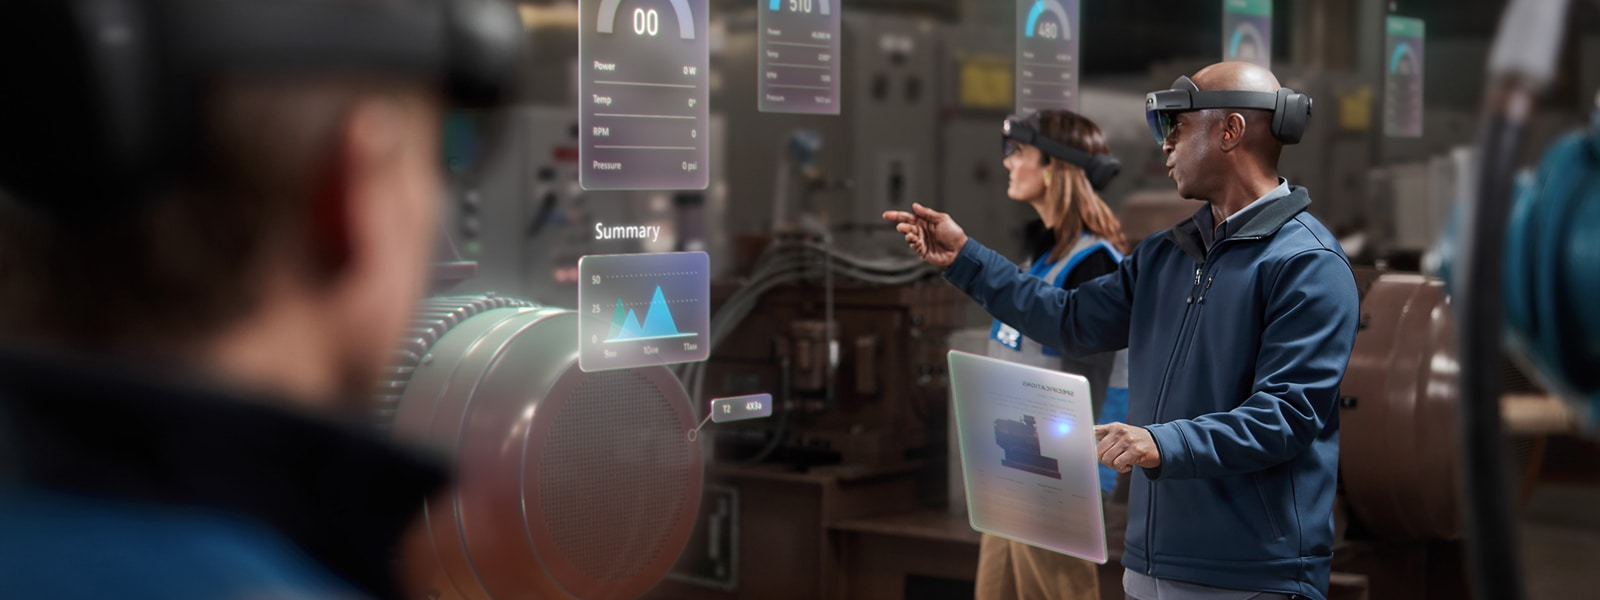 A couple of technicians using HoloLens glasses and A.I. technology to work.